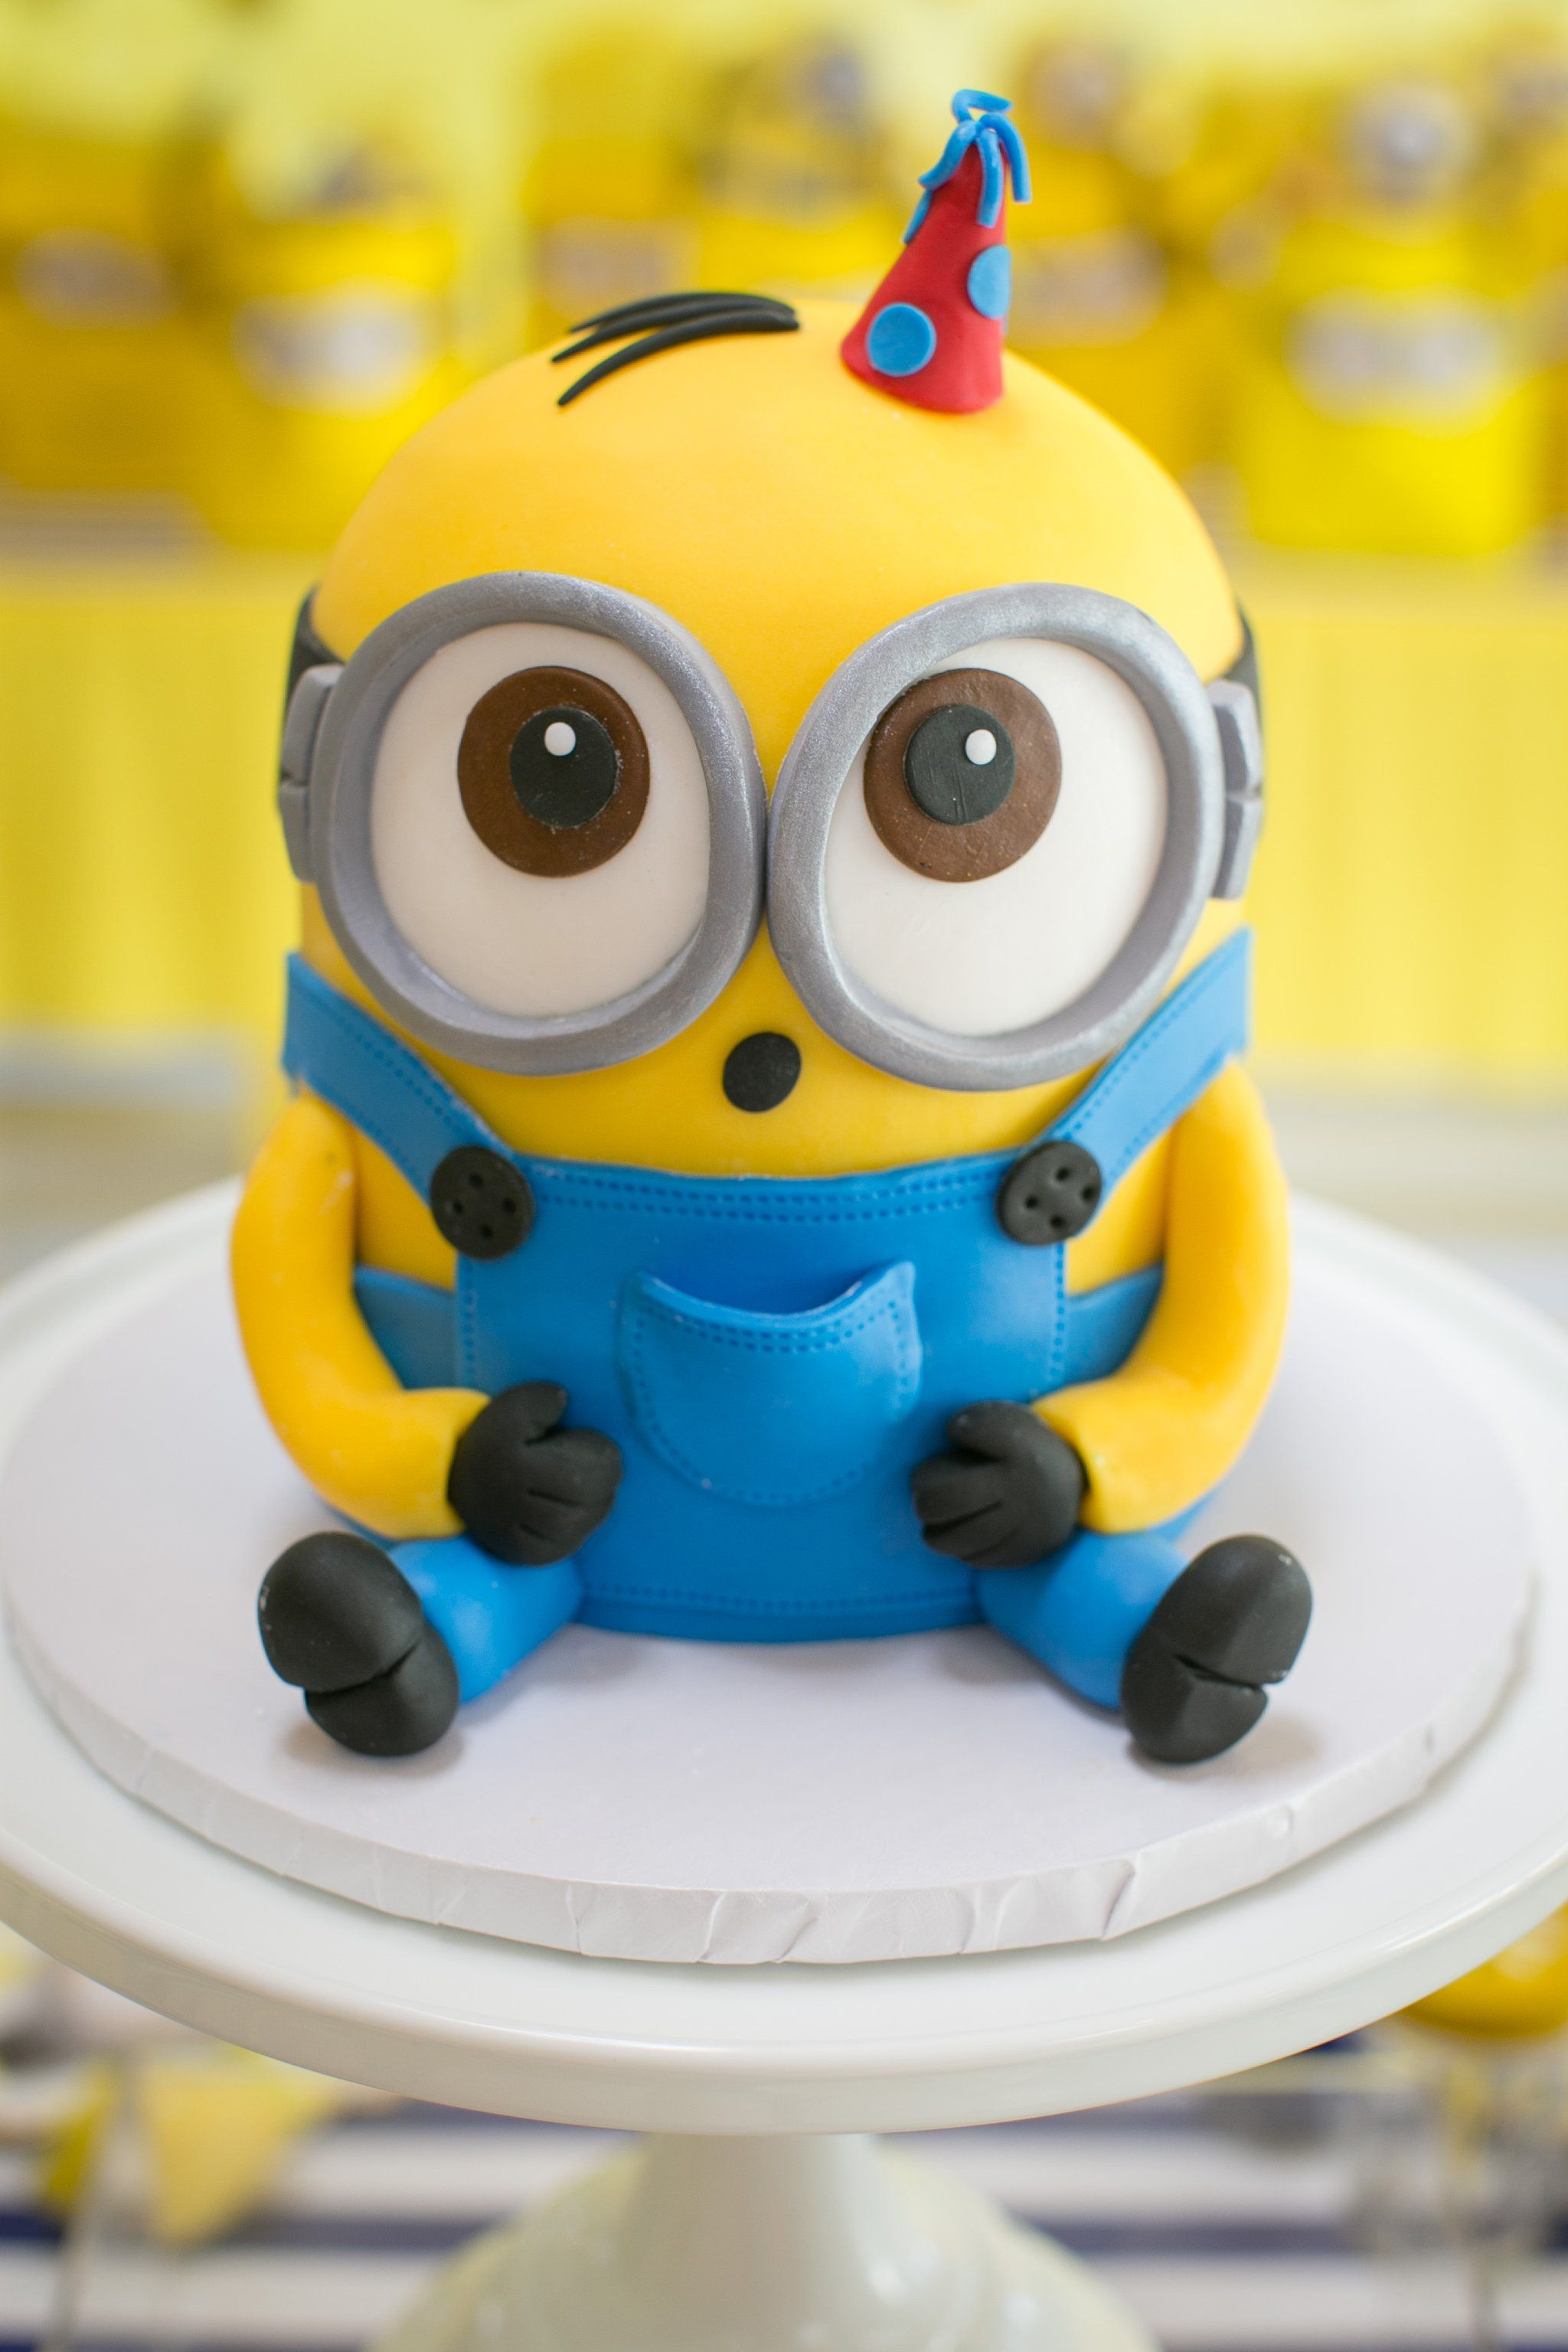 This One in a Minion Birthday Party Will Have Your Kiddo Going